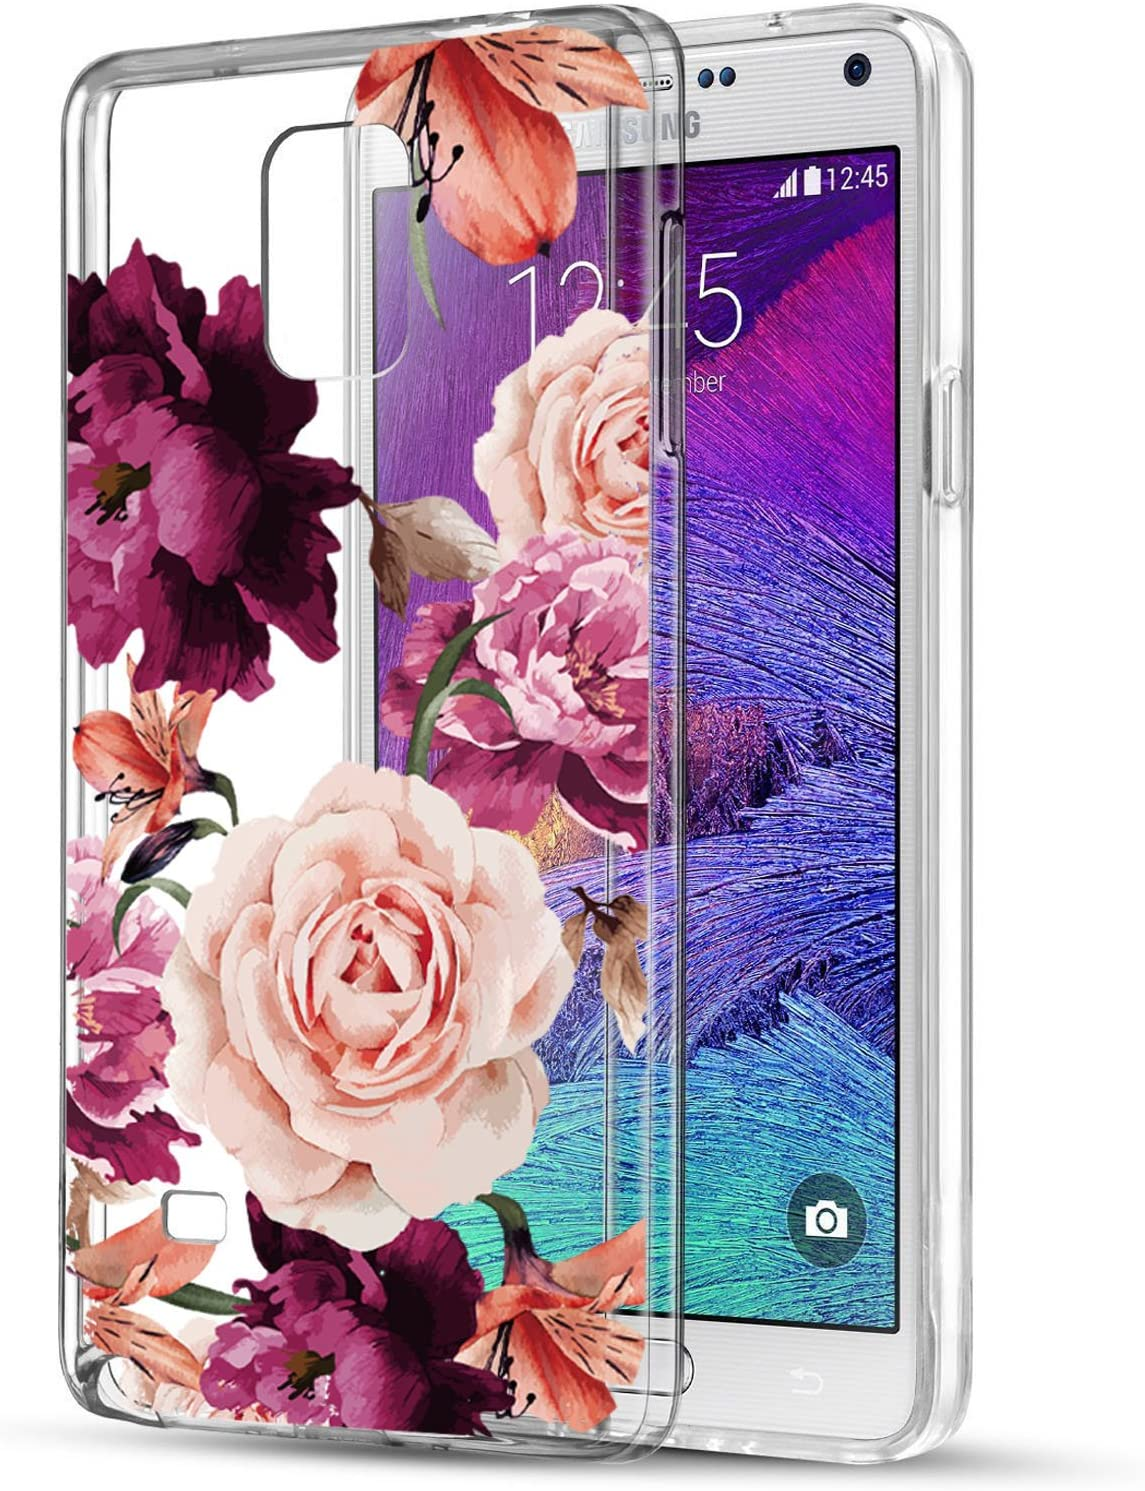 BAISRKE Note 4 Case, Galaxy Note 4 Case with Flowers Slim Shockproof Clear Floral Pattern Soft Flexible TPU Back Cove for Samsung Galaxy Note 4 SM-N910S/SM-N910C [Purple Pink]